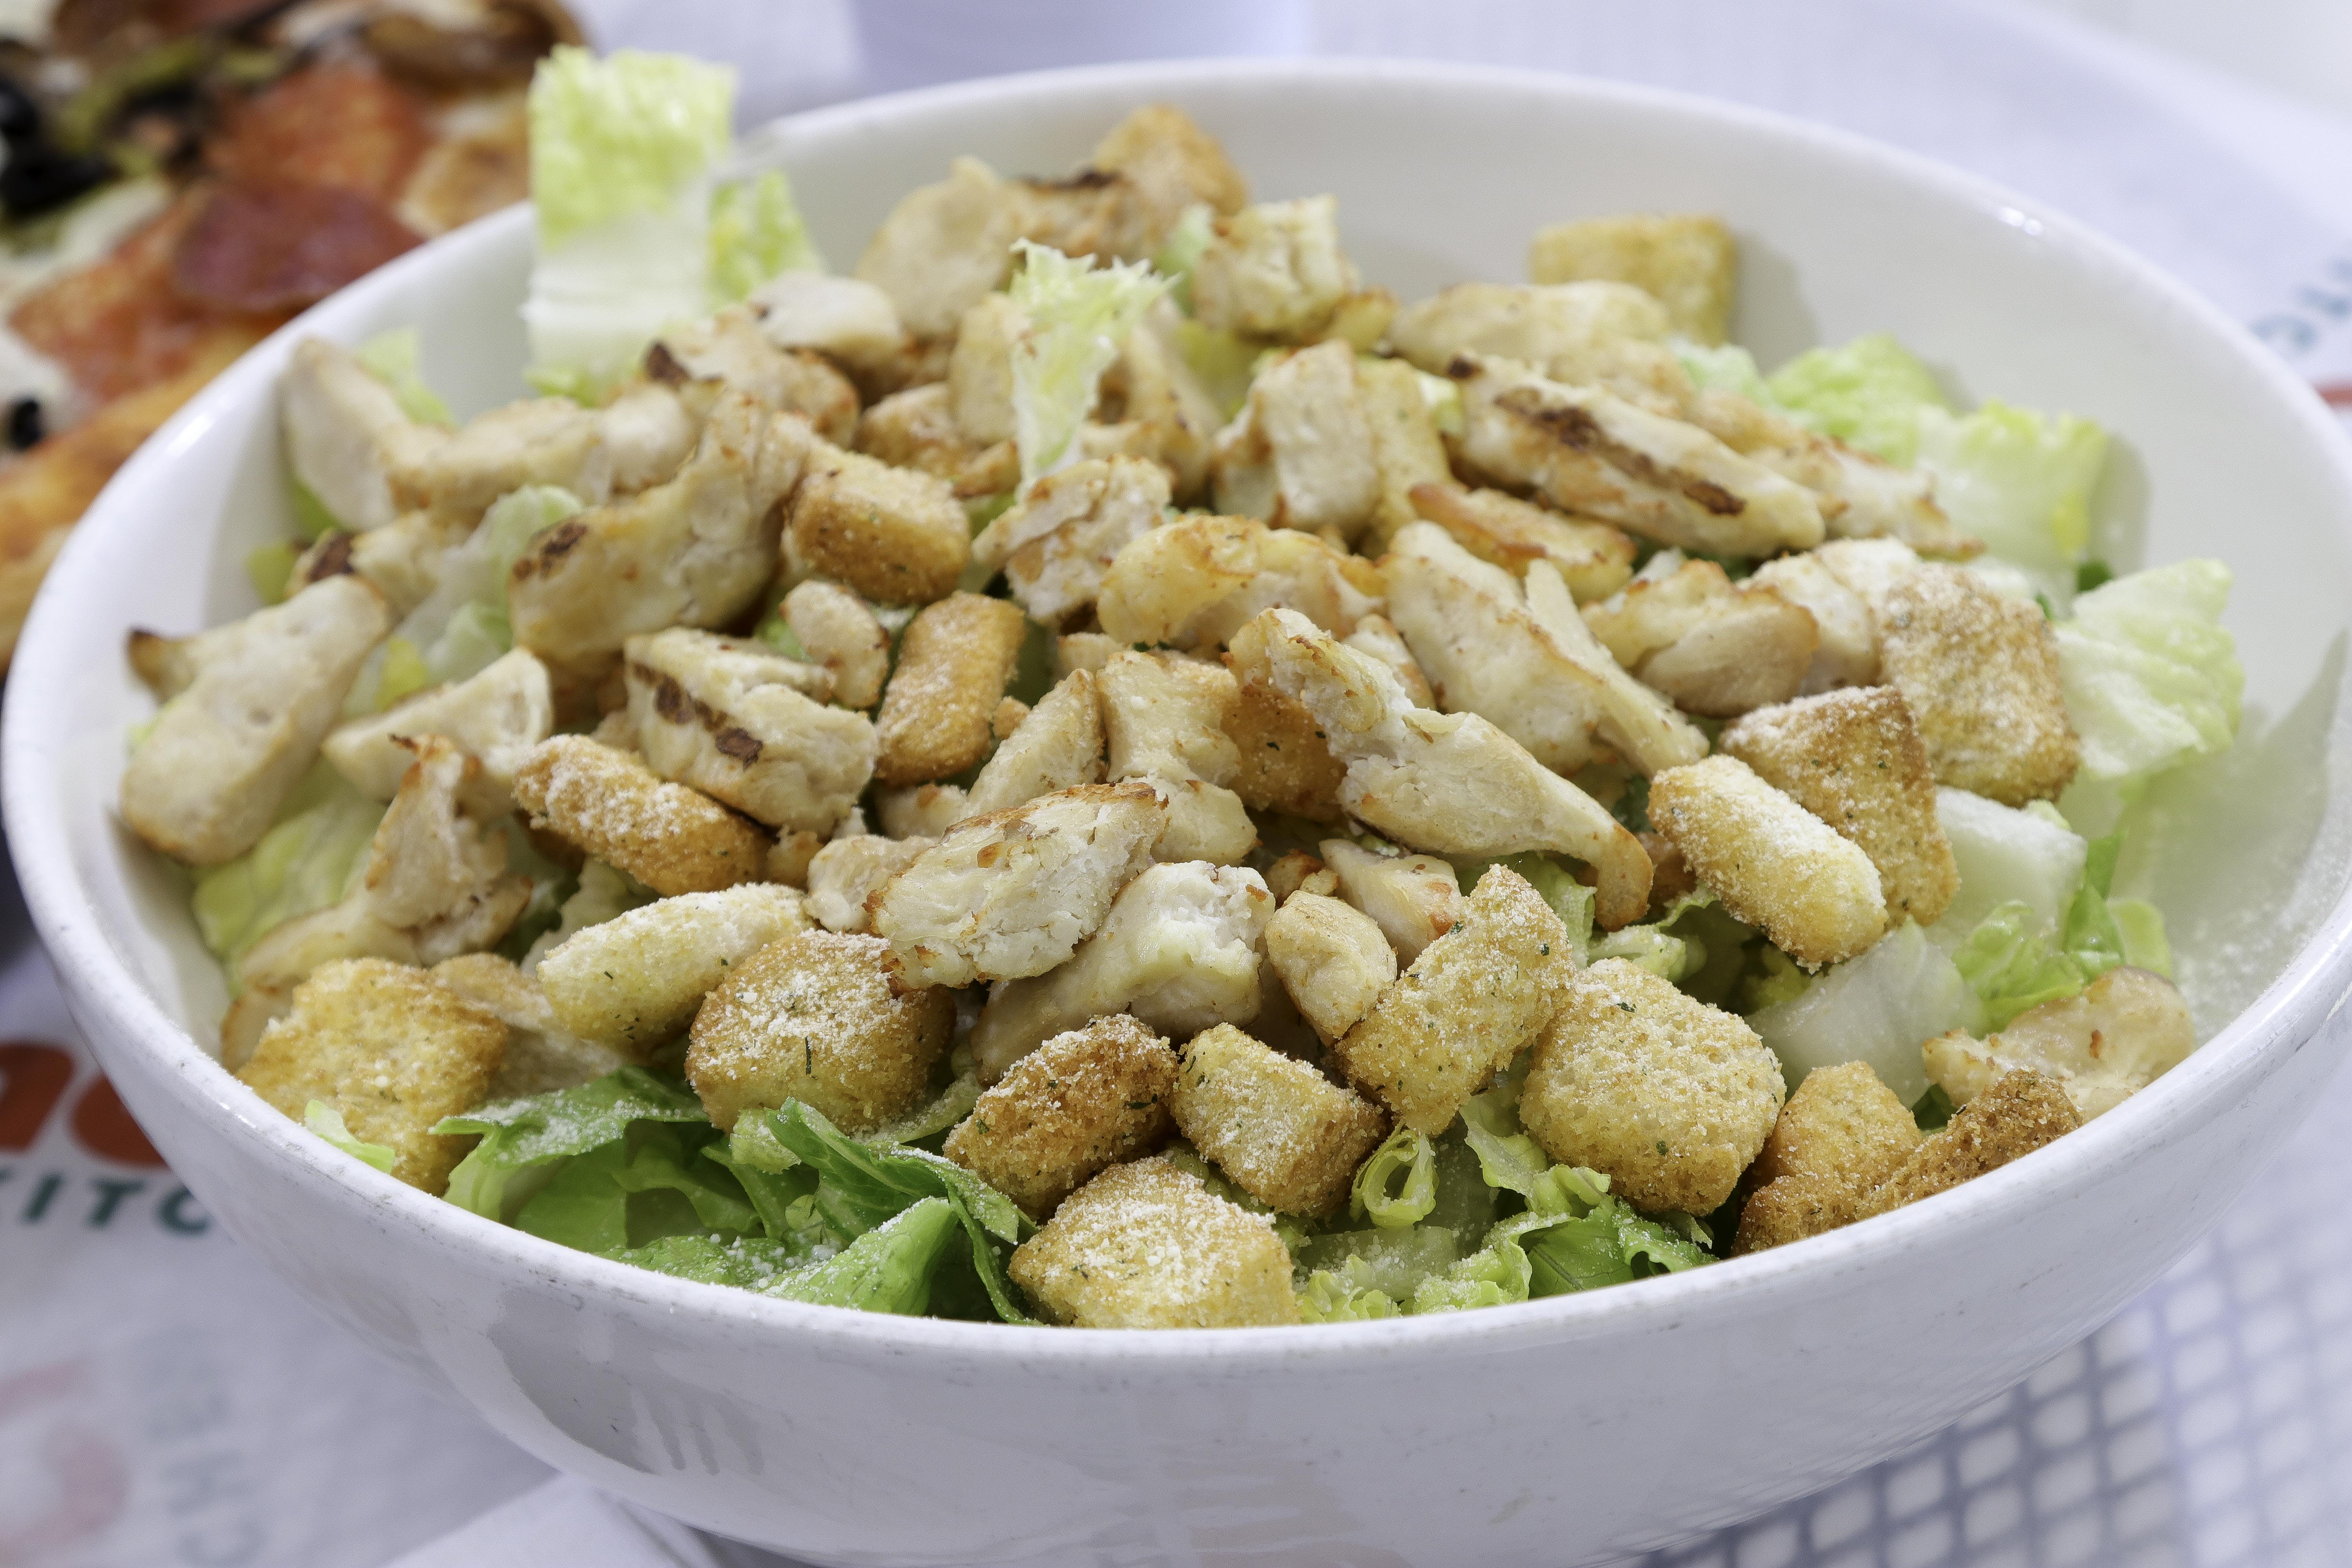 Chicken Caesar Salad from Ameci Pizza & Pasta - Lake Forest in Lake Forest, CA